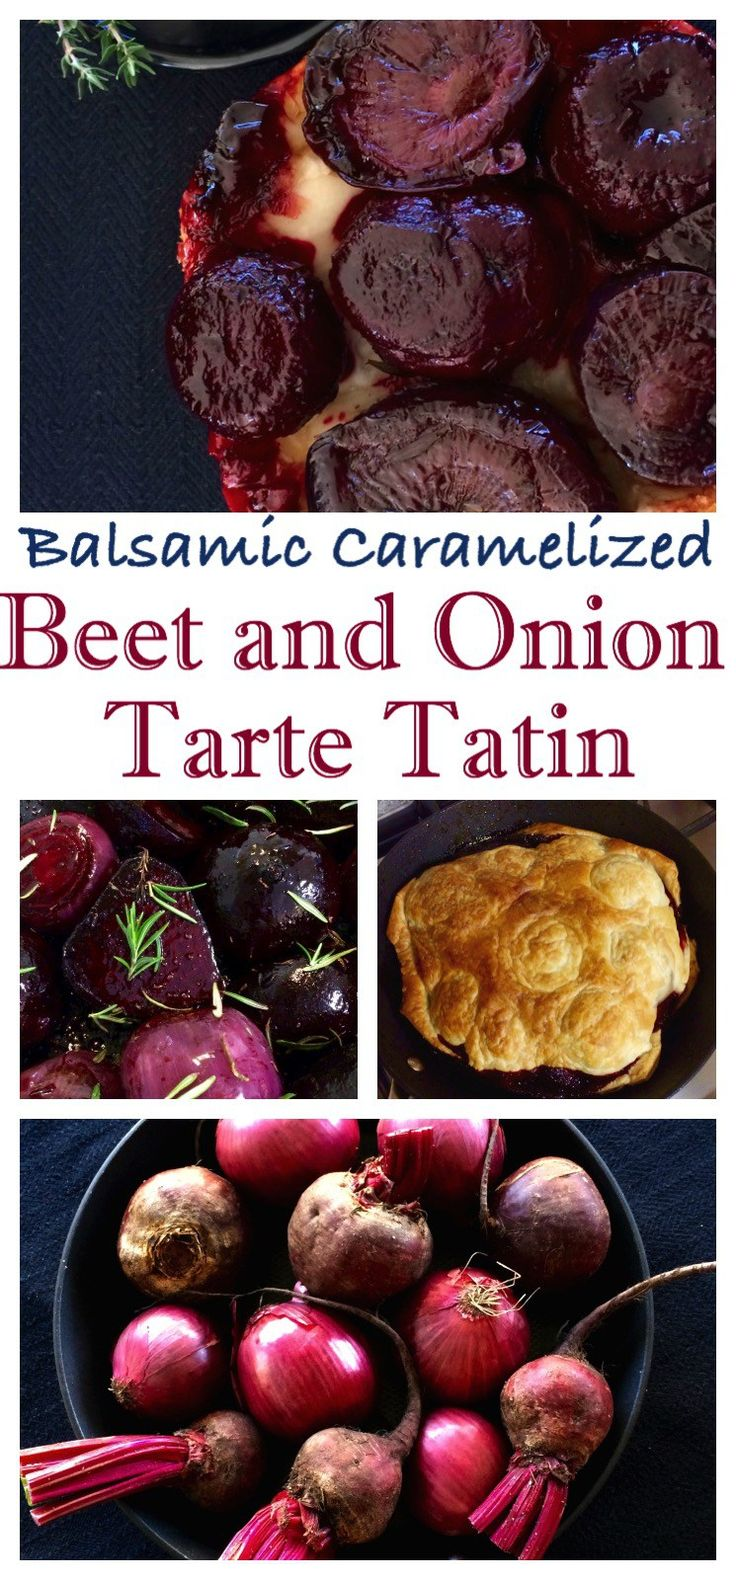 Balsamic Caramelized Beet and Onion Tarte Tatin with Goat's Cheese & Fresh Thyme - A cold weather family favourite recipe